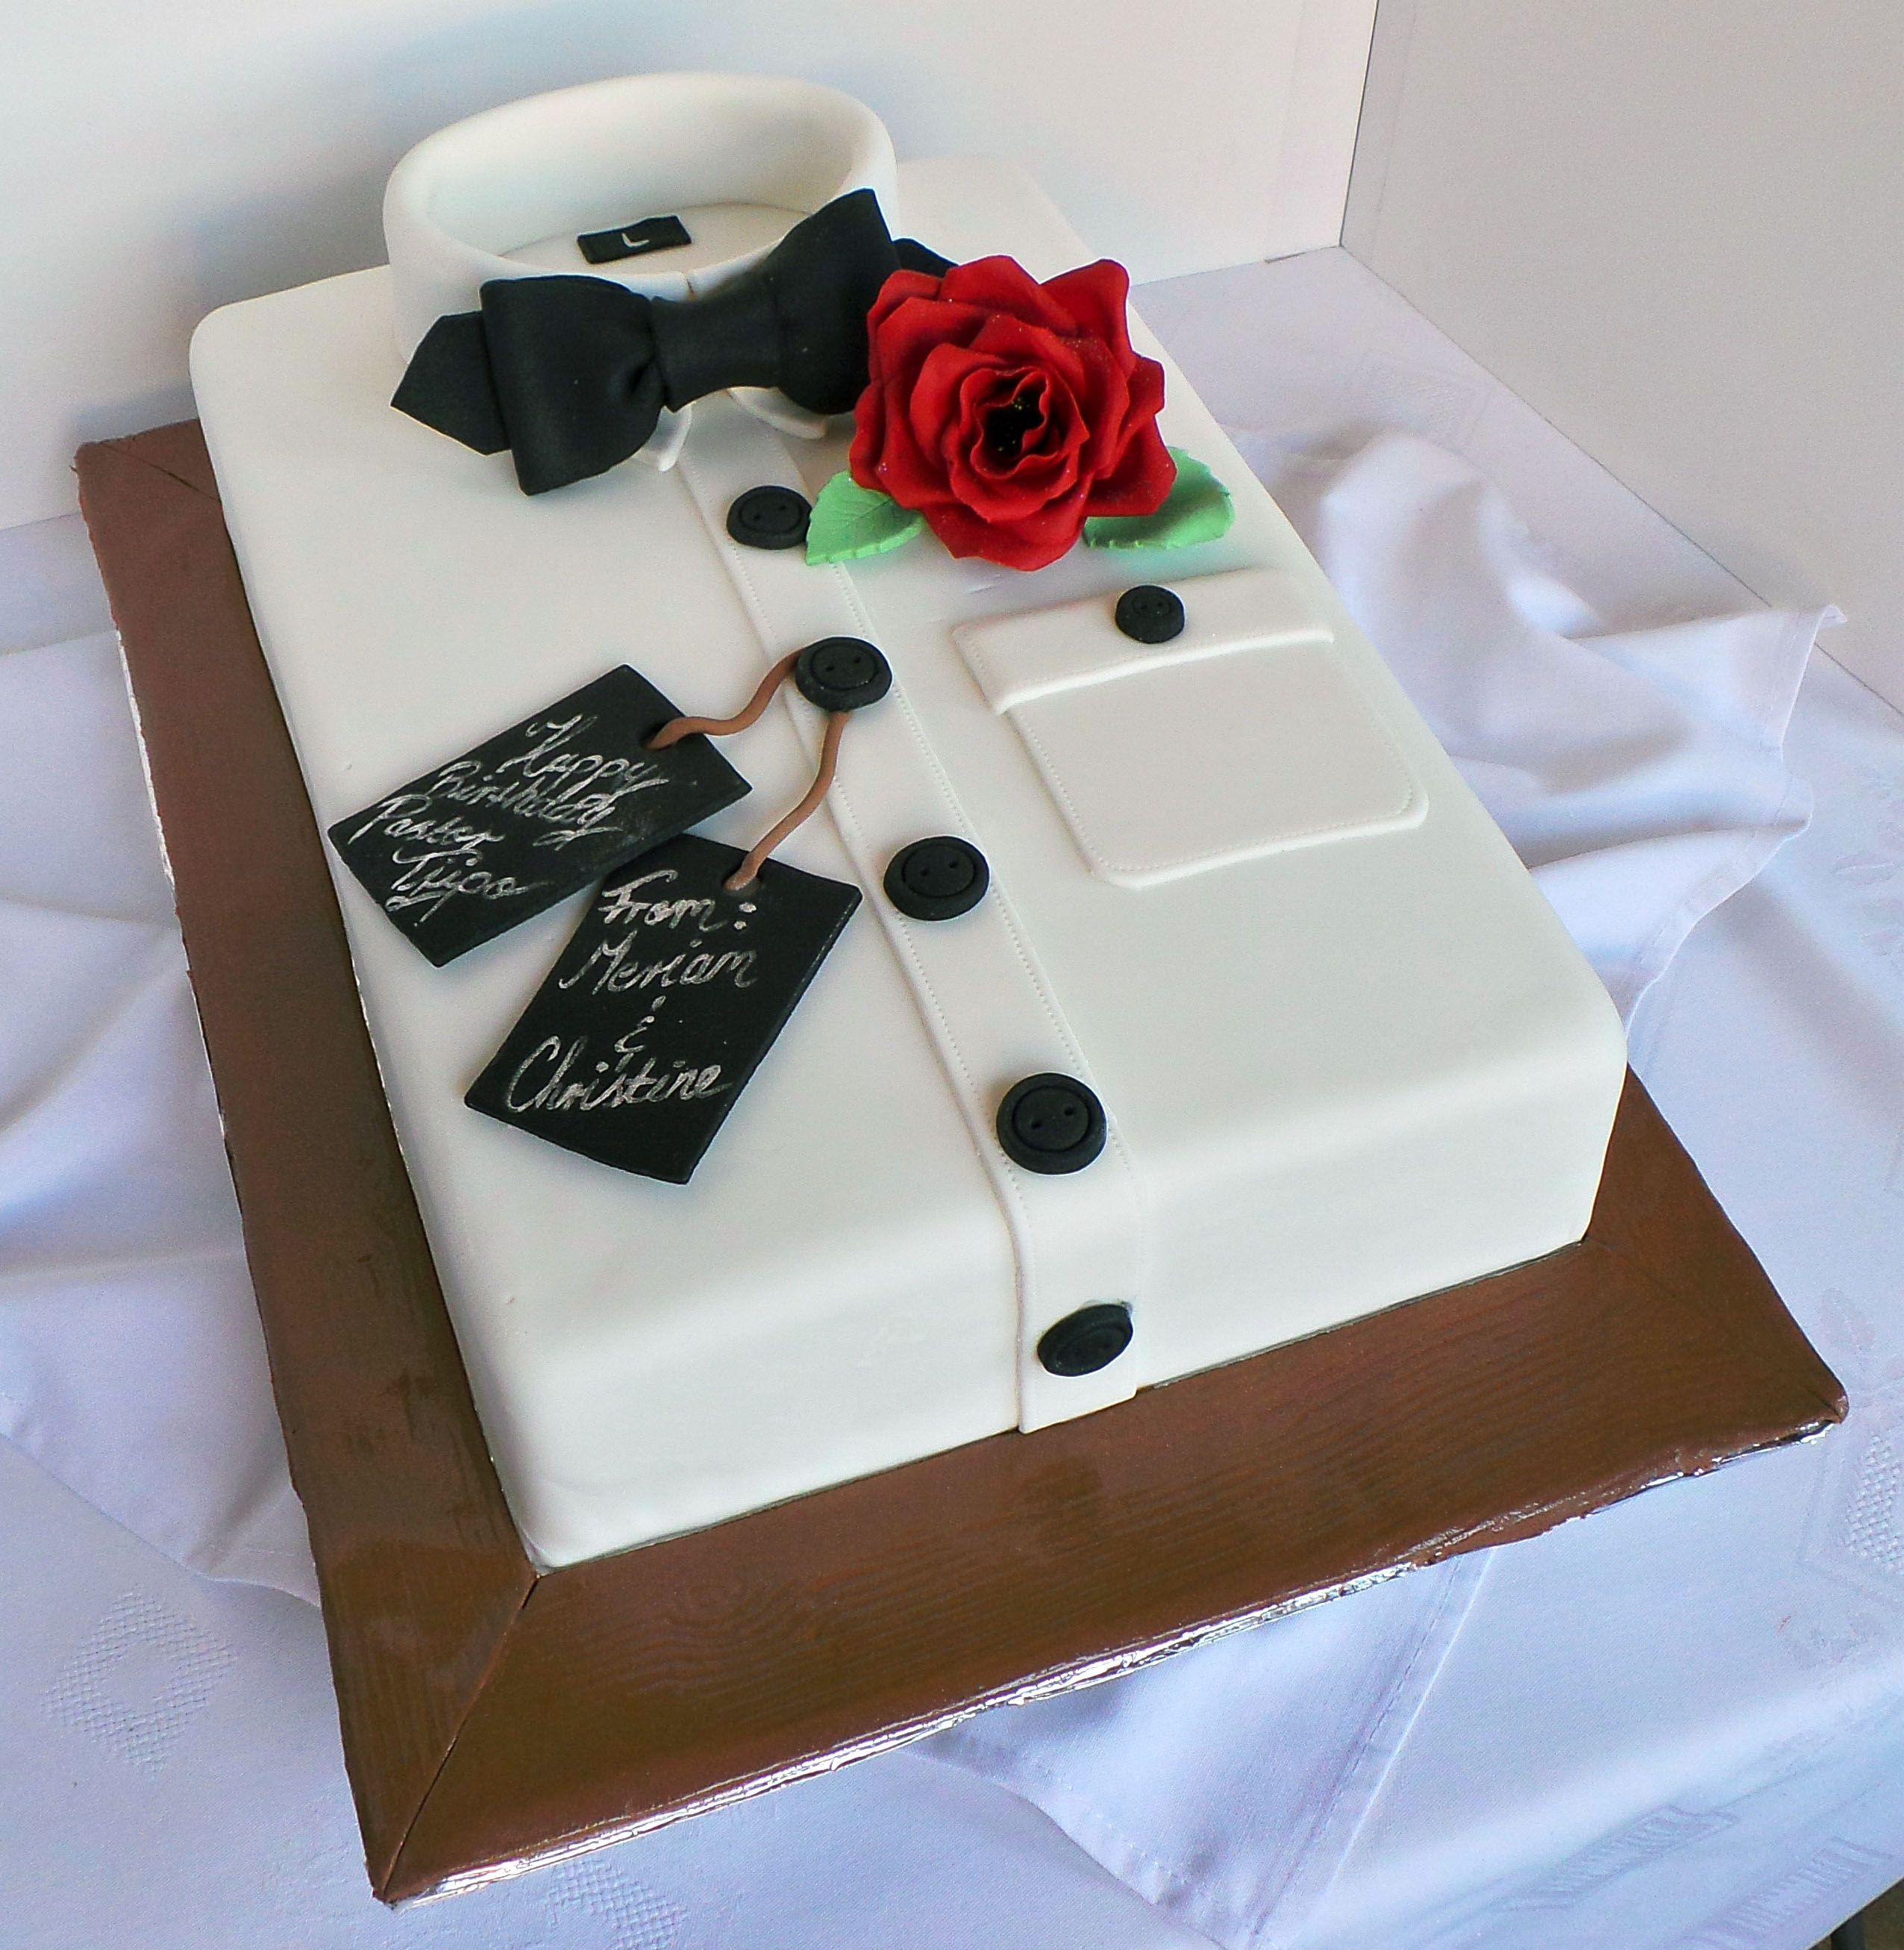 Beautiful Wedding Cakes By The Baking Grounds Bakery Café: Men's Shirt Birthday Cake (With Images)